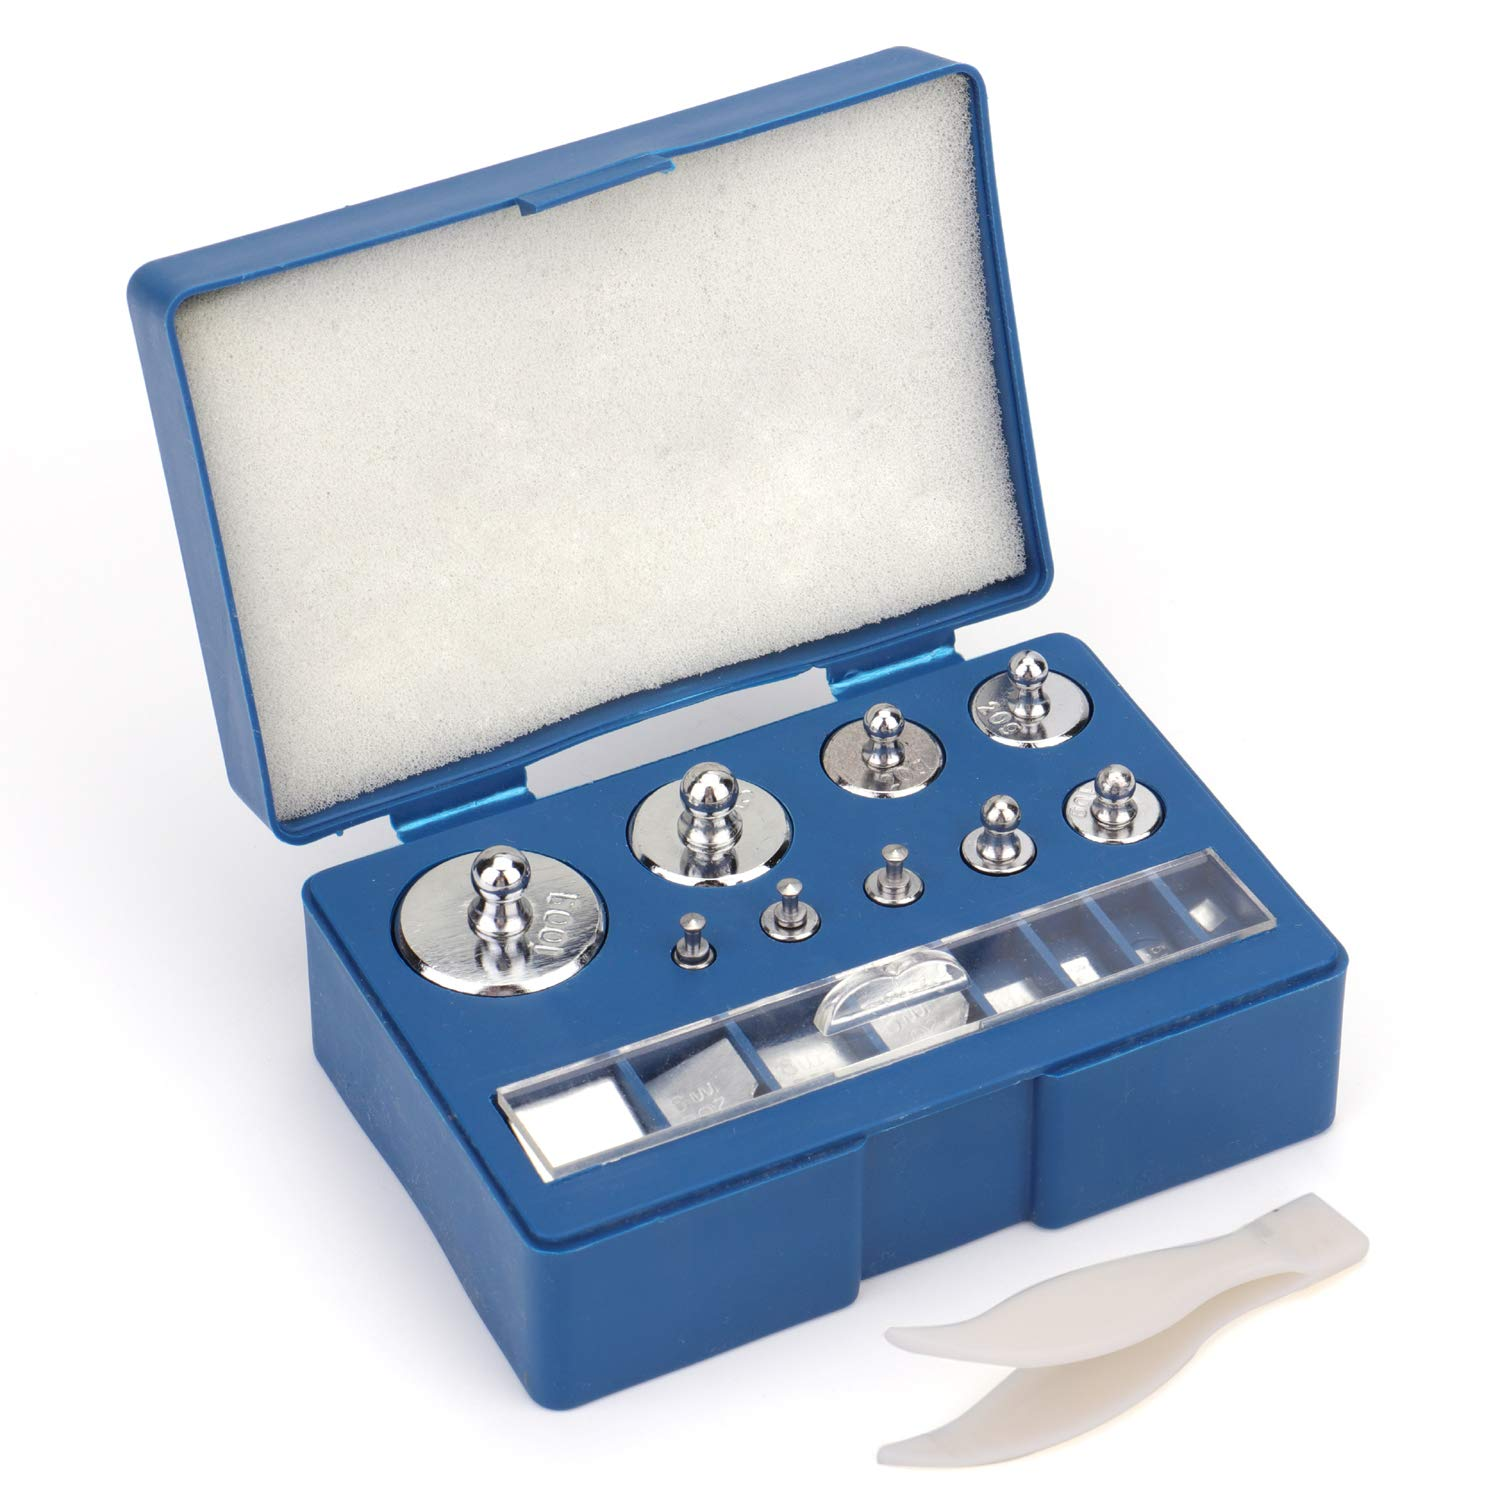 Bekith 17 Pcs Precision Weight 10mg-100g Precision Steel Calibration Weight Kit Set with Tweezers for Digital Balance Scale, Jewellery Scale by Bekith